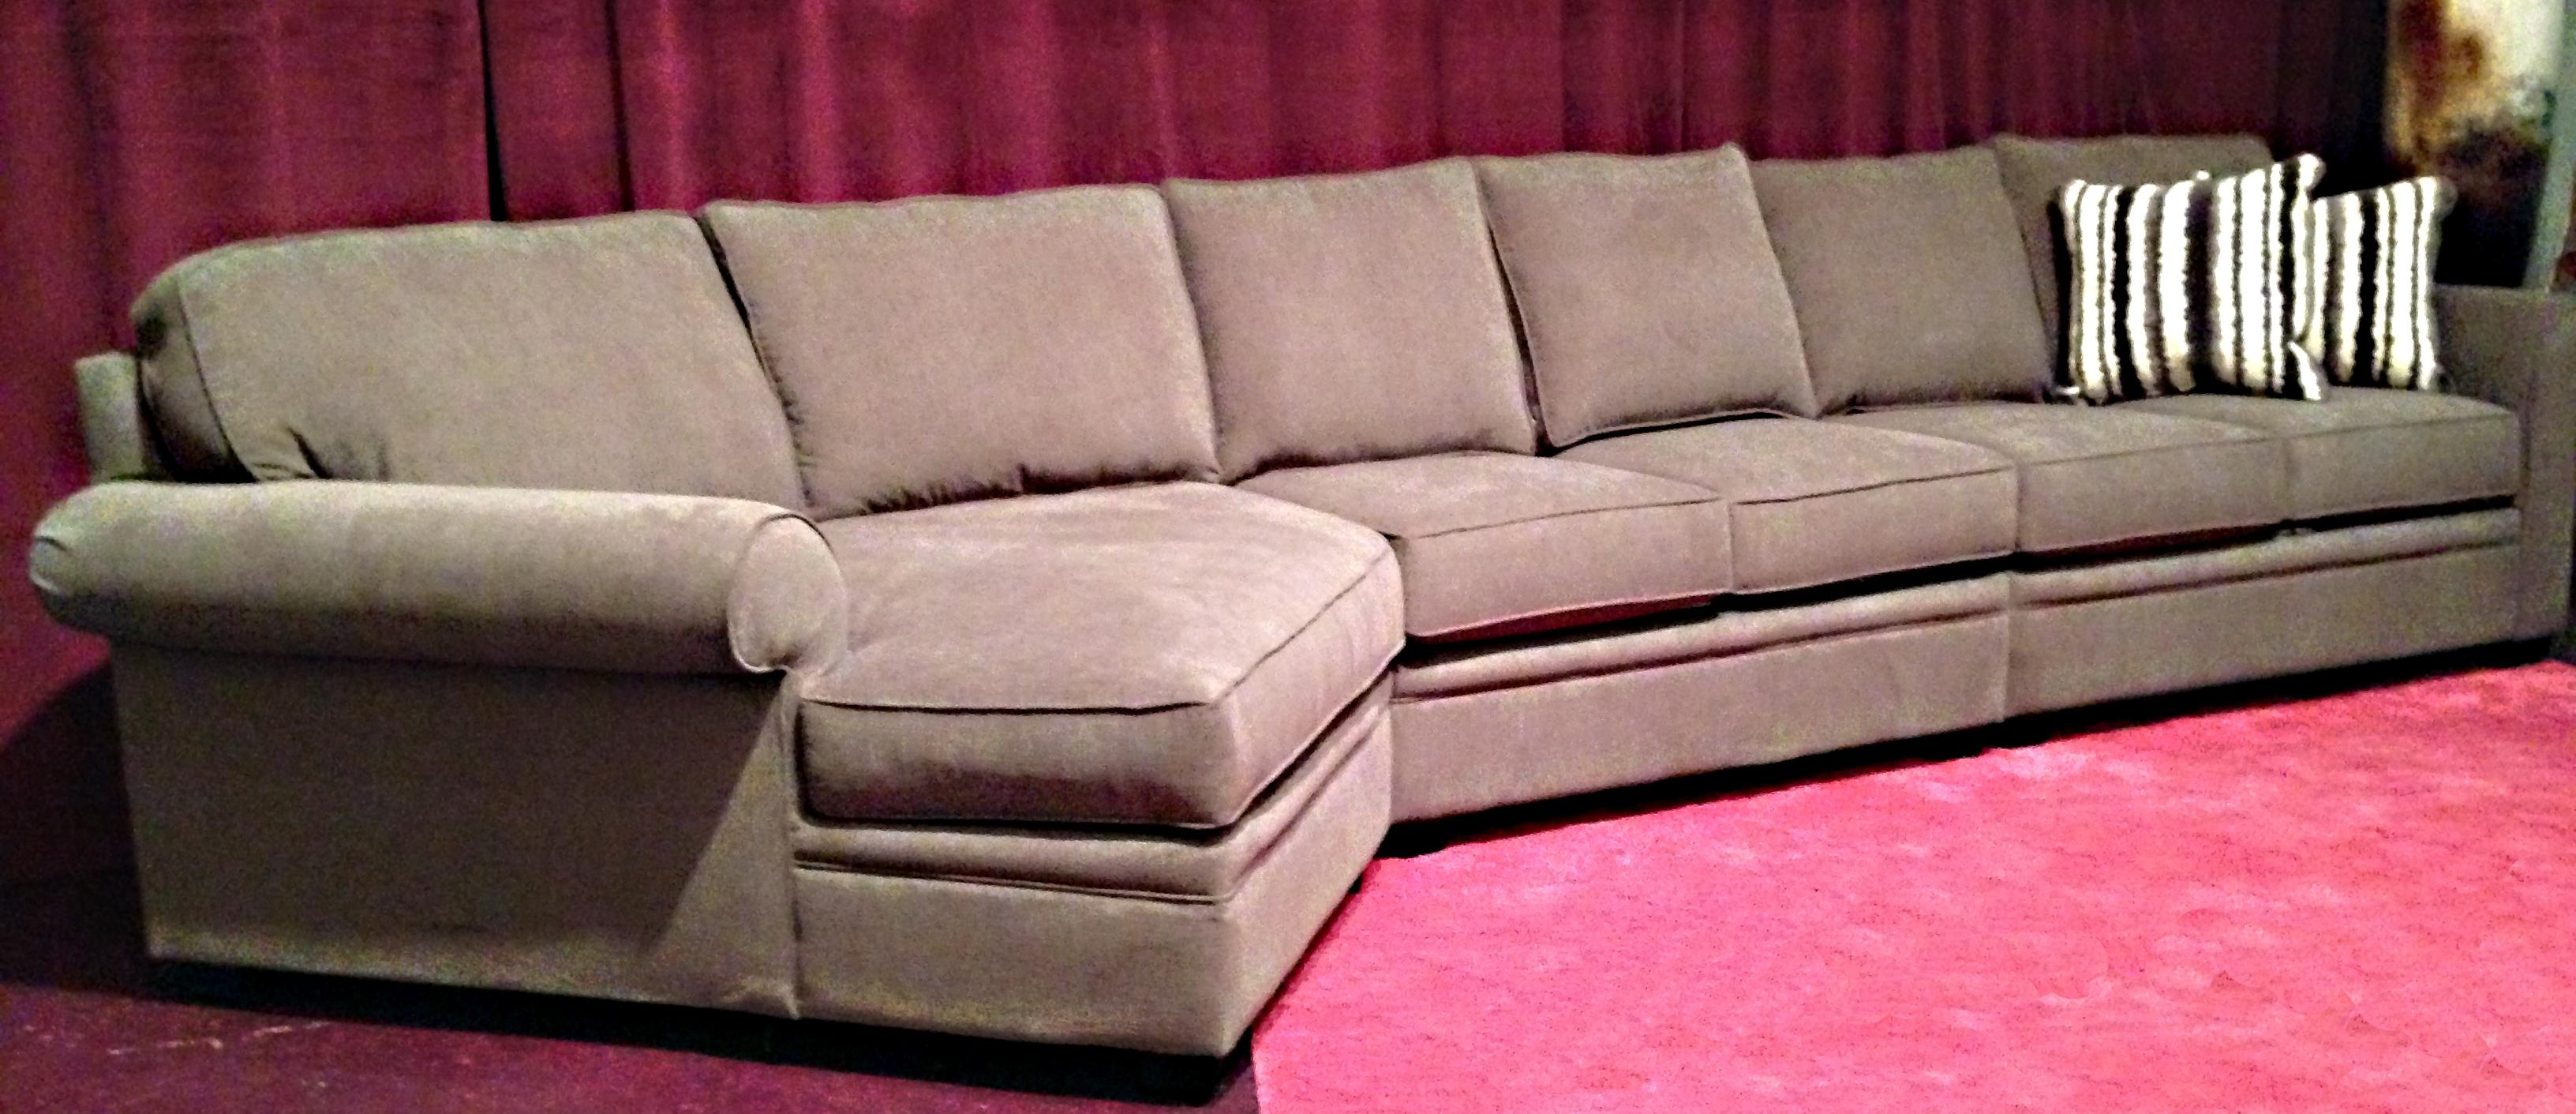 Sofas: Curved Sectional Sofa | Oversized Sofas | Recliner Sectional Within Circular Sectional Sofa (View 14 of 15)